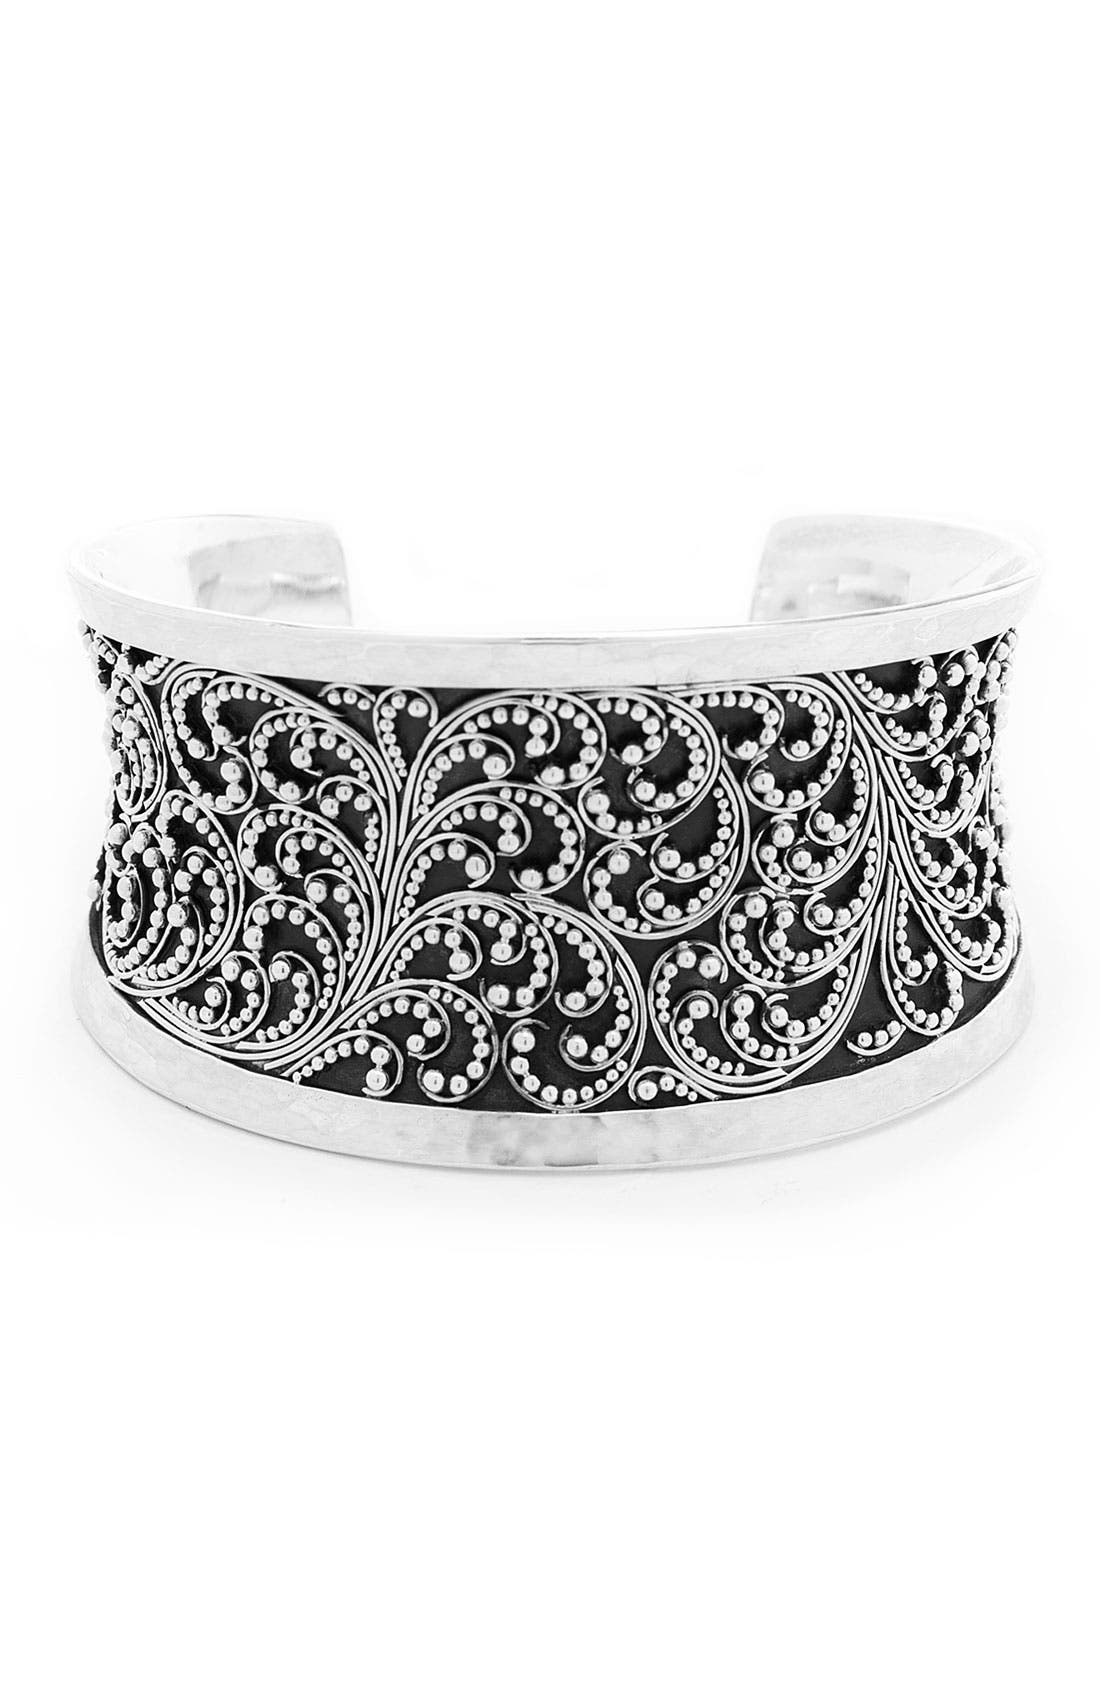 Main Image - Lois Hill Granulated Hammered Silver Cuff Bracelet